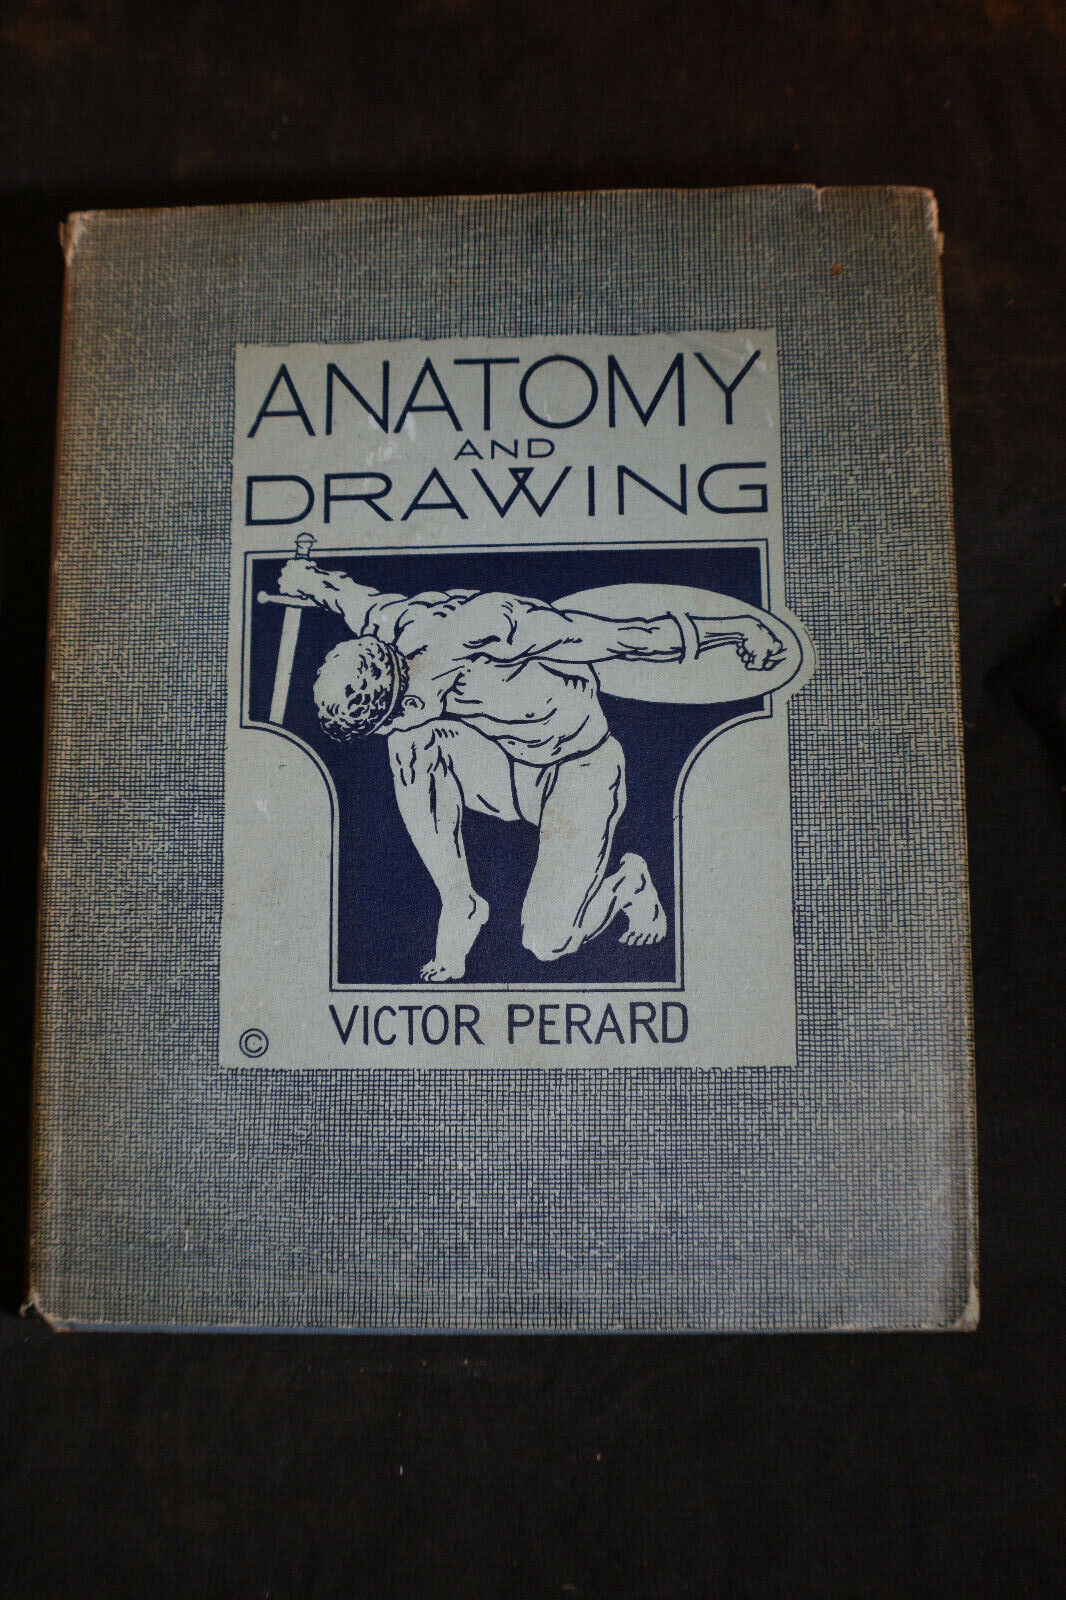 1942 Anatomy And Drawing By Victor Perard HCDJ - $17.99